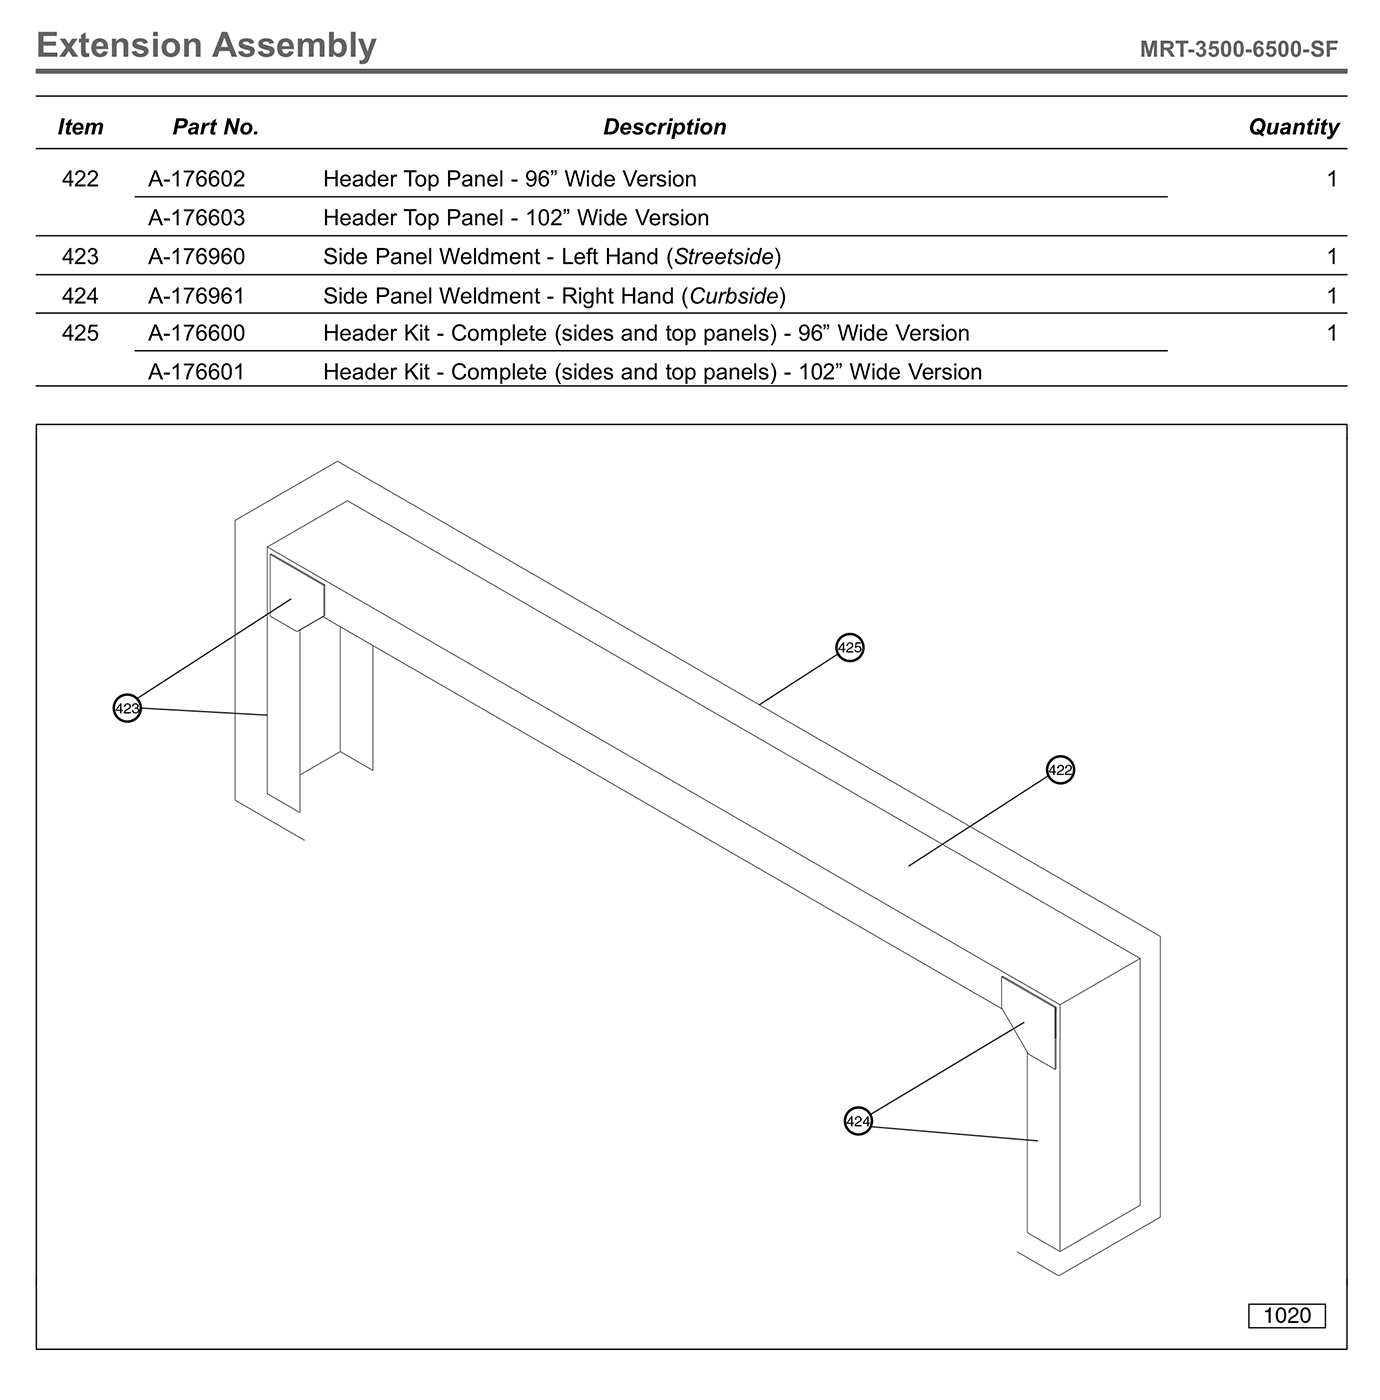 MRT-3500-6500-SF Extension Assembly